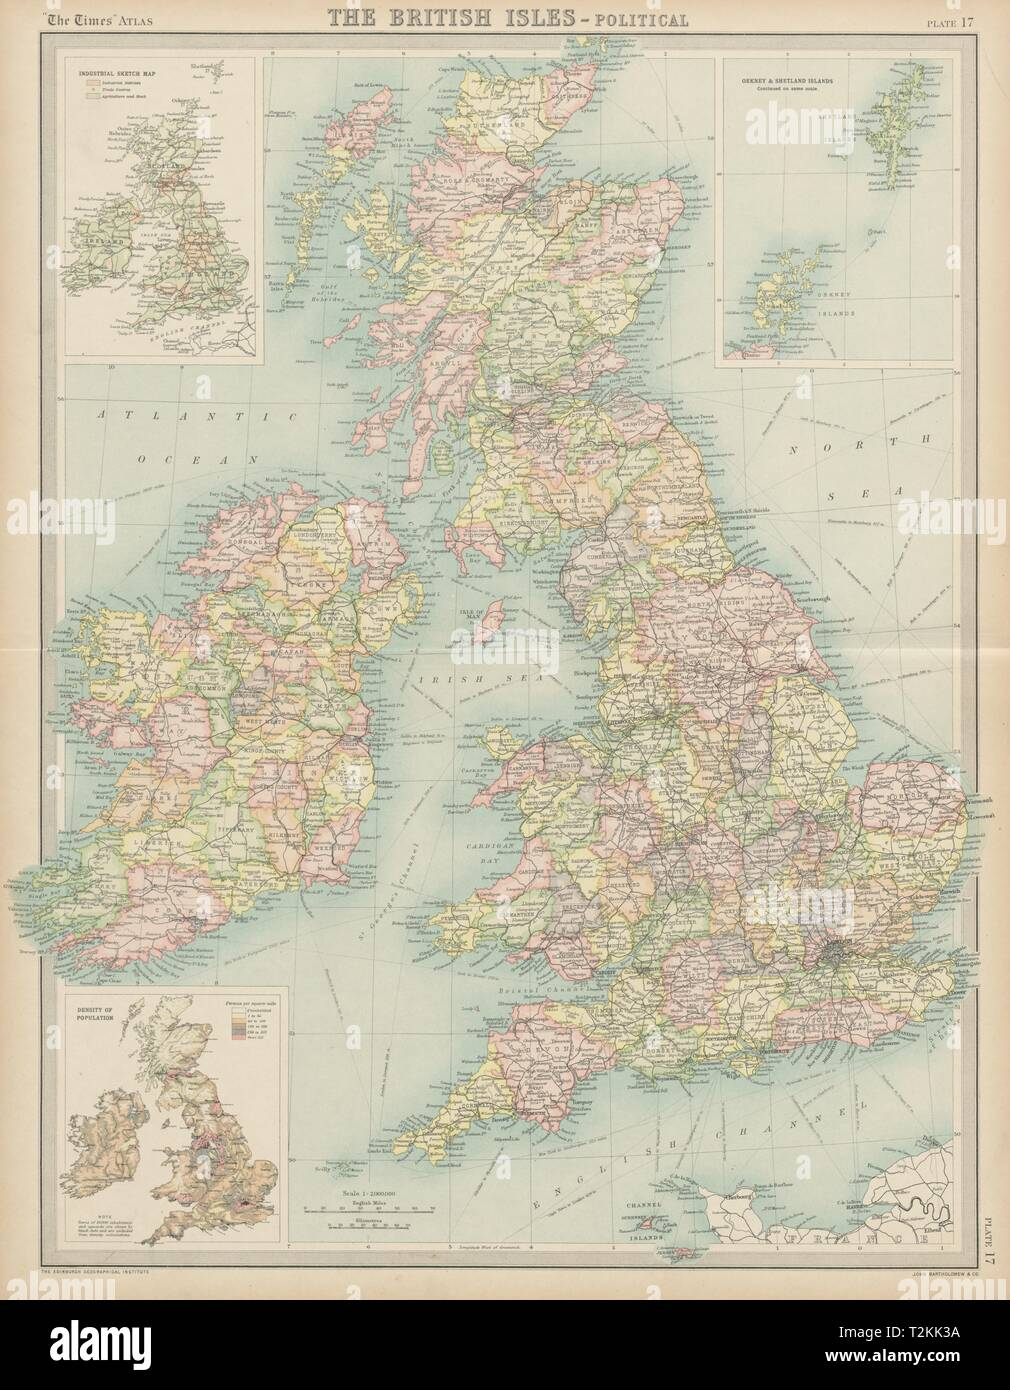 Map Of Ireland And Wales.British Isles Political Counties England Ireland Scotland Wales